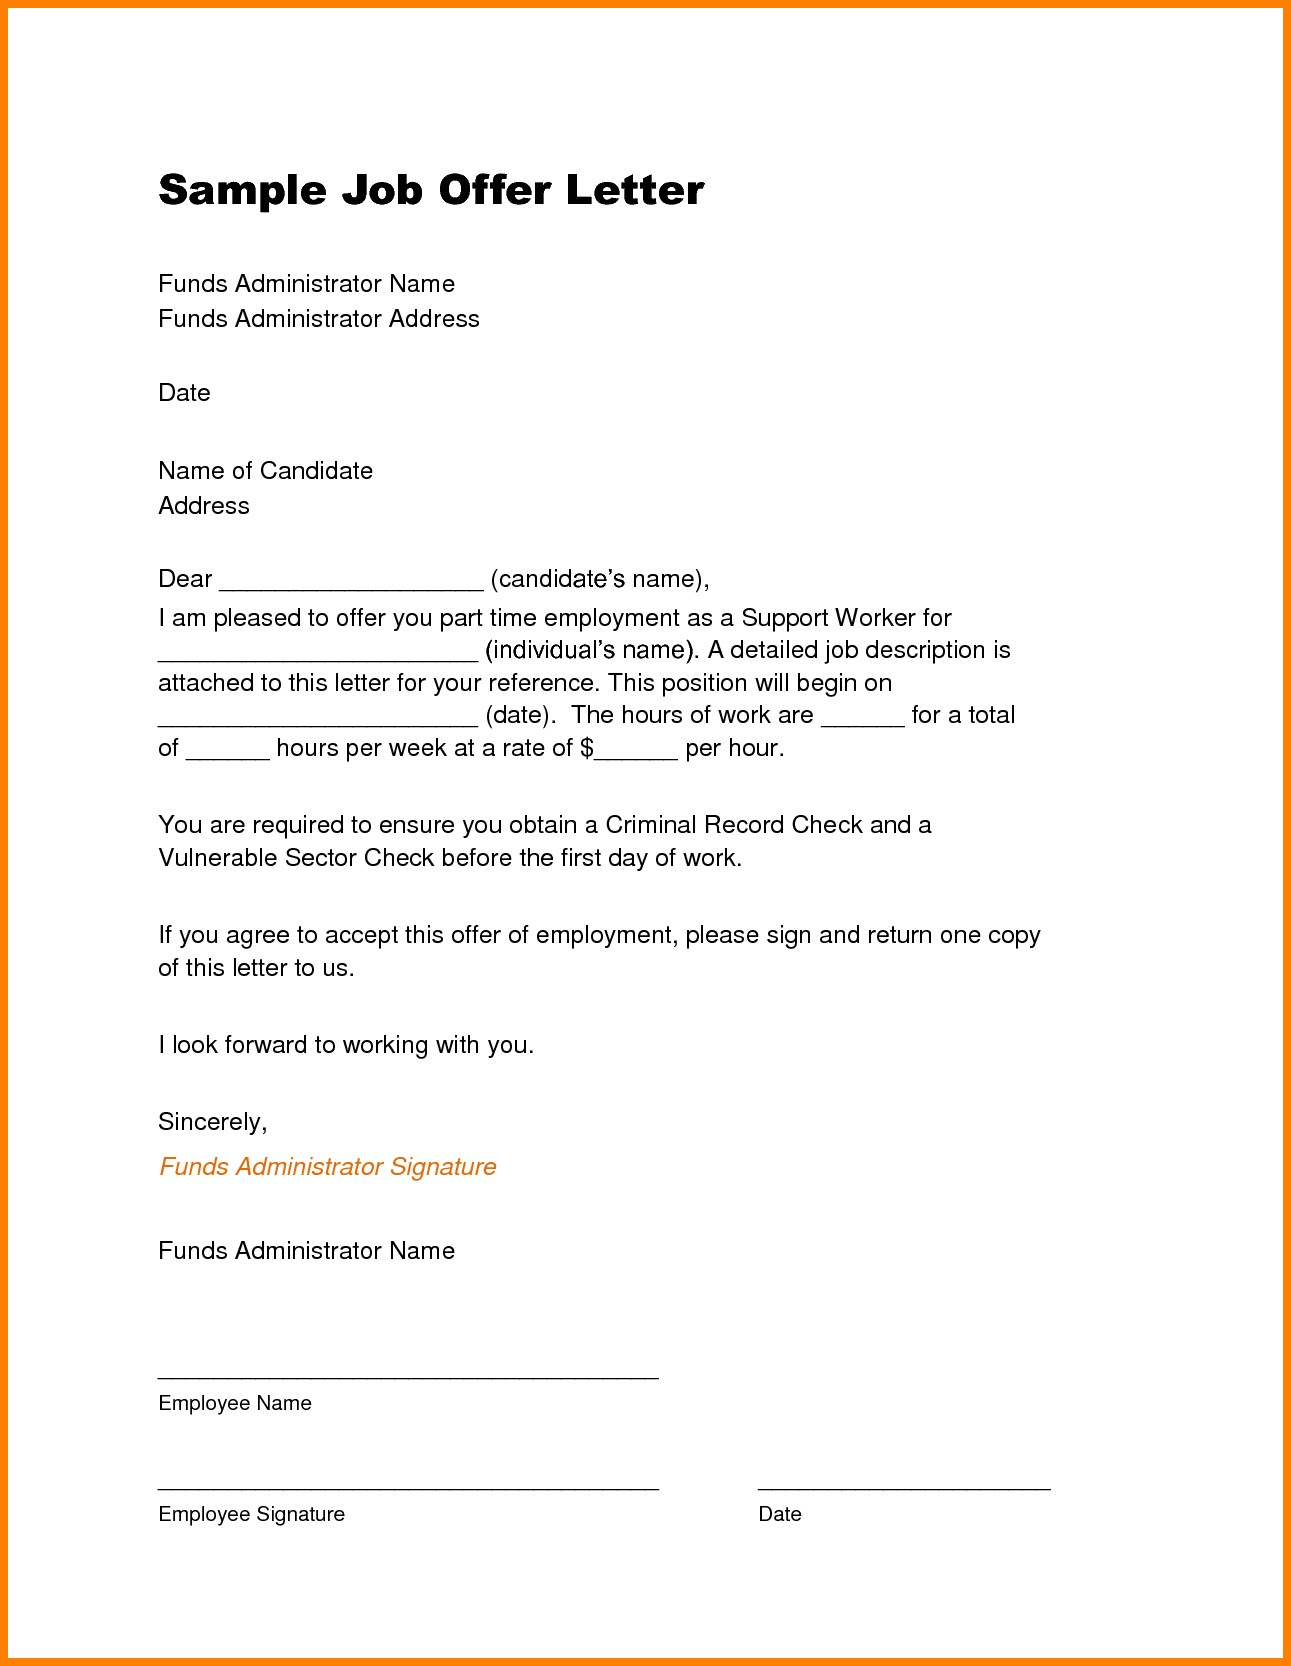 job offer letter template pdf sample offer letter pelosleclaire